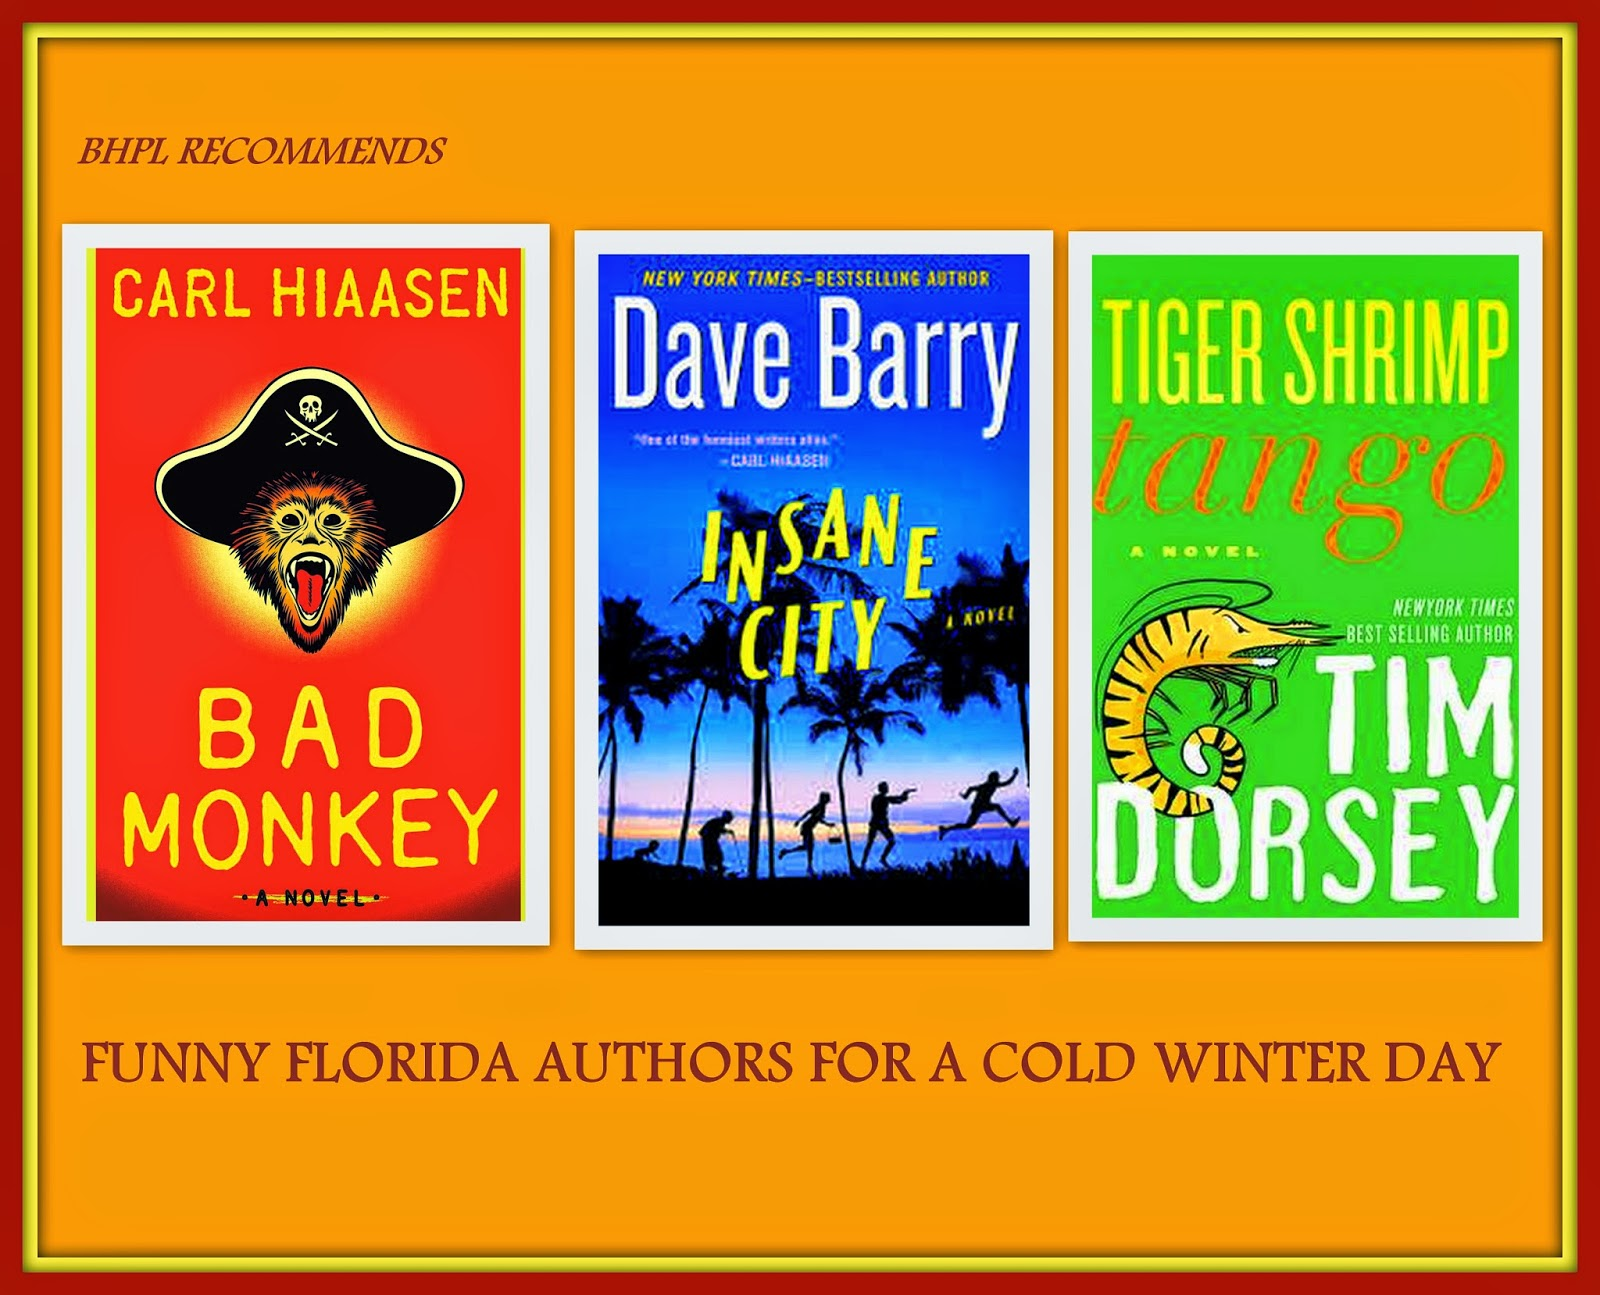 Funny Florida authors Picasa collage